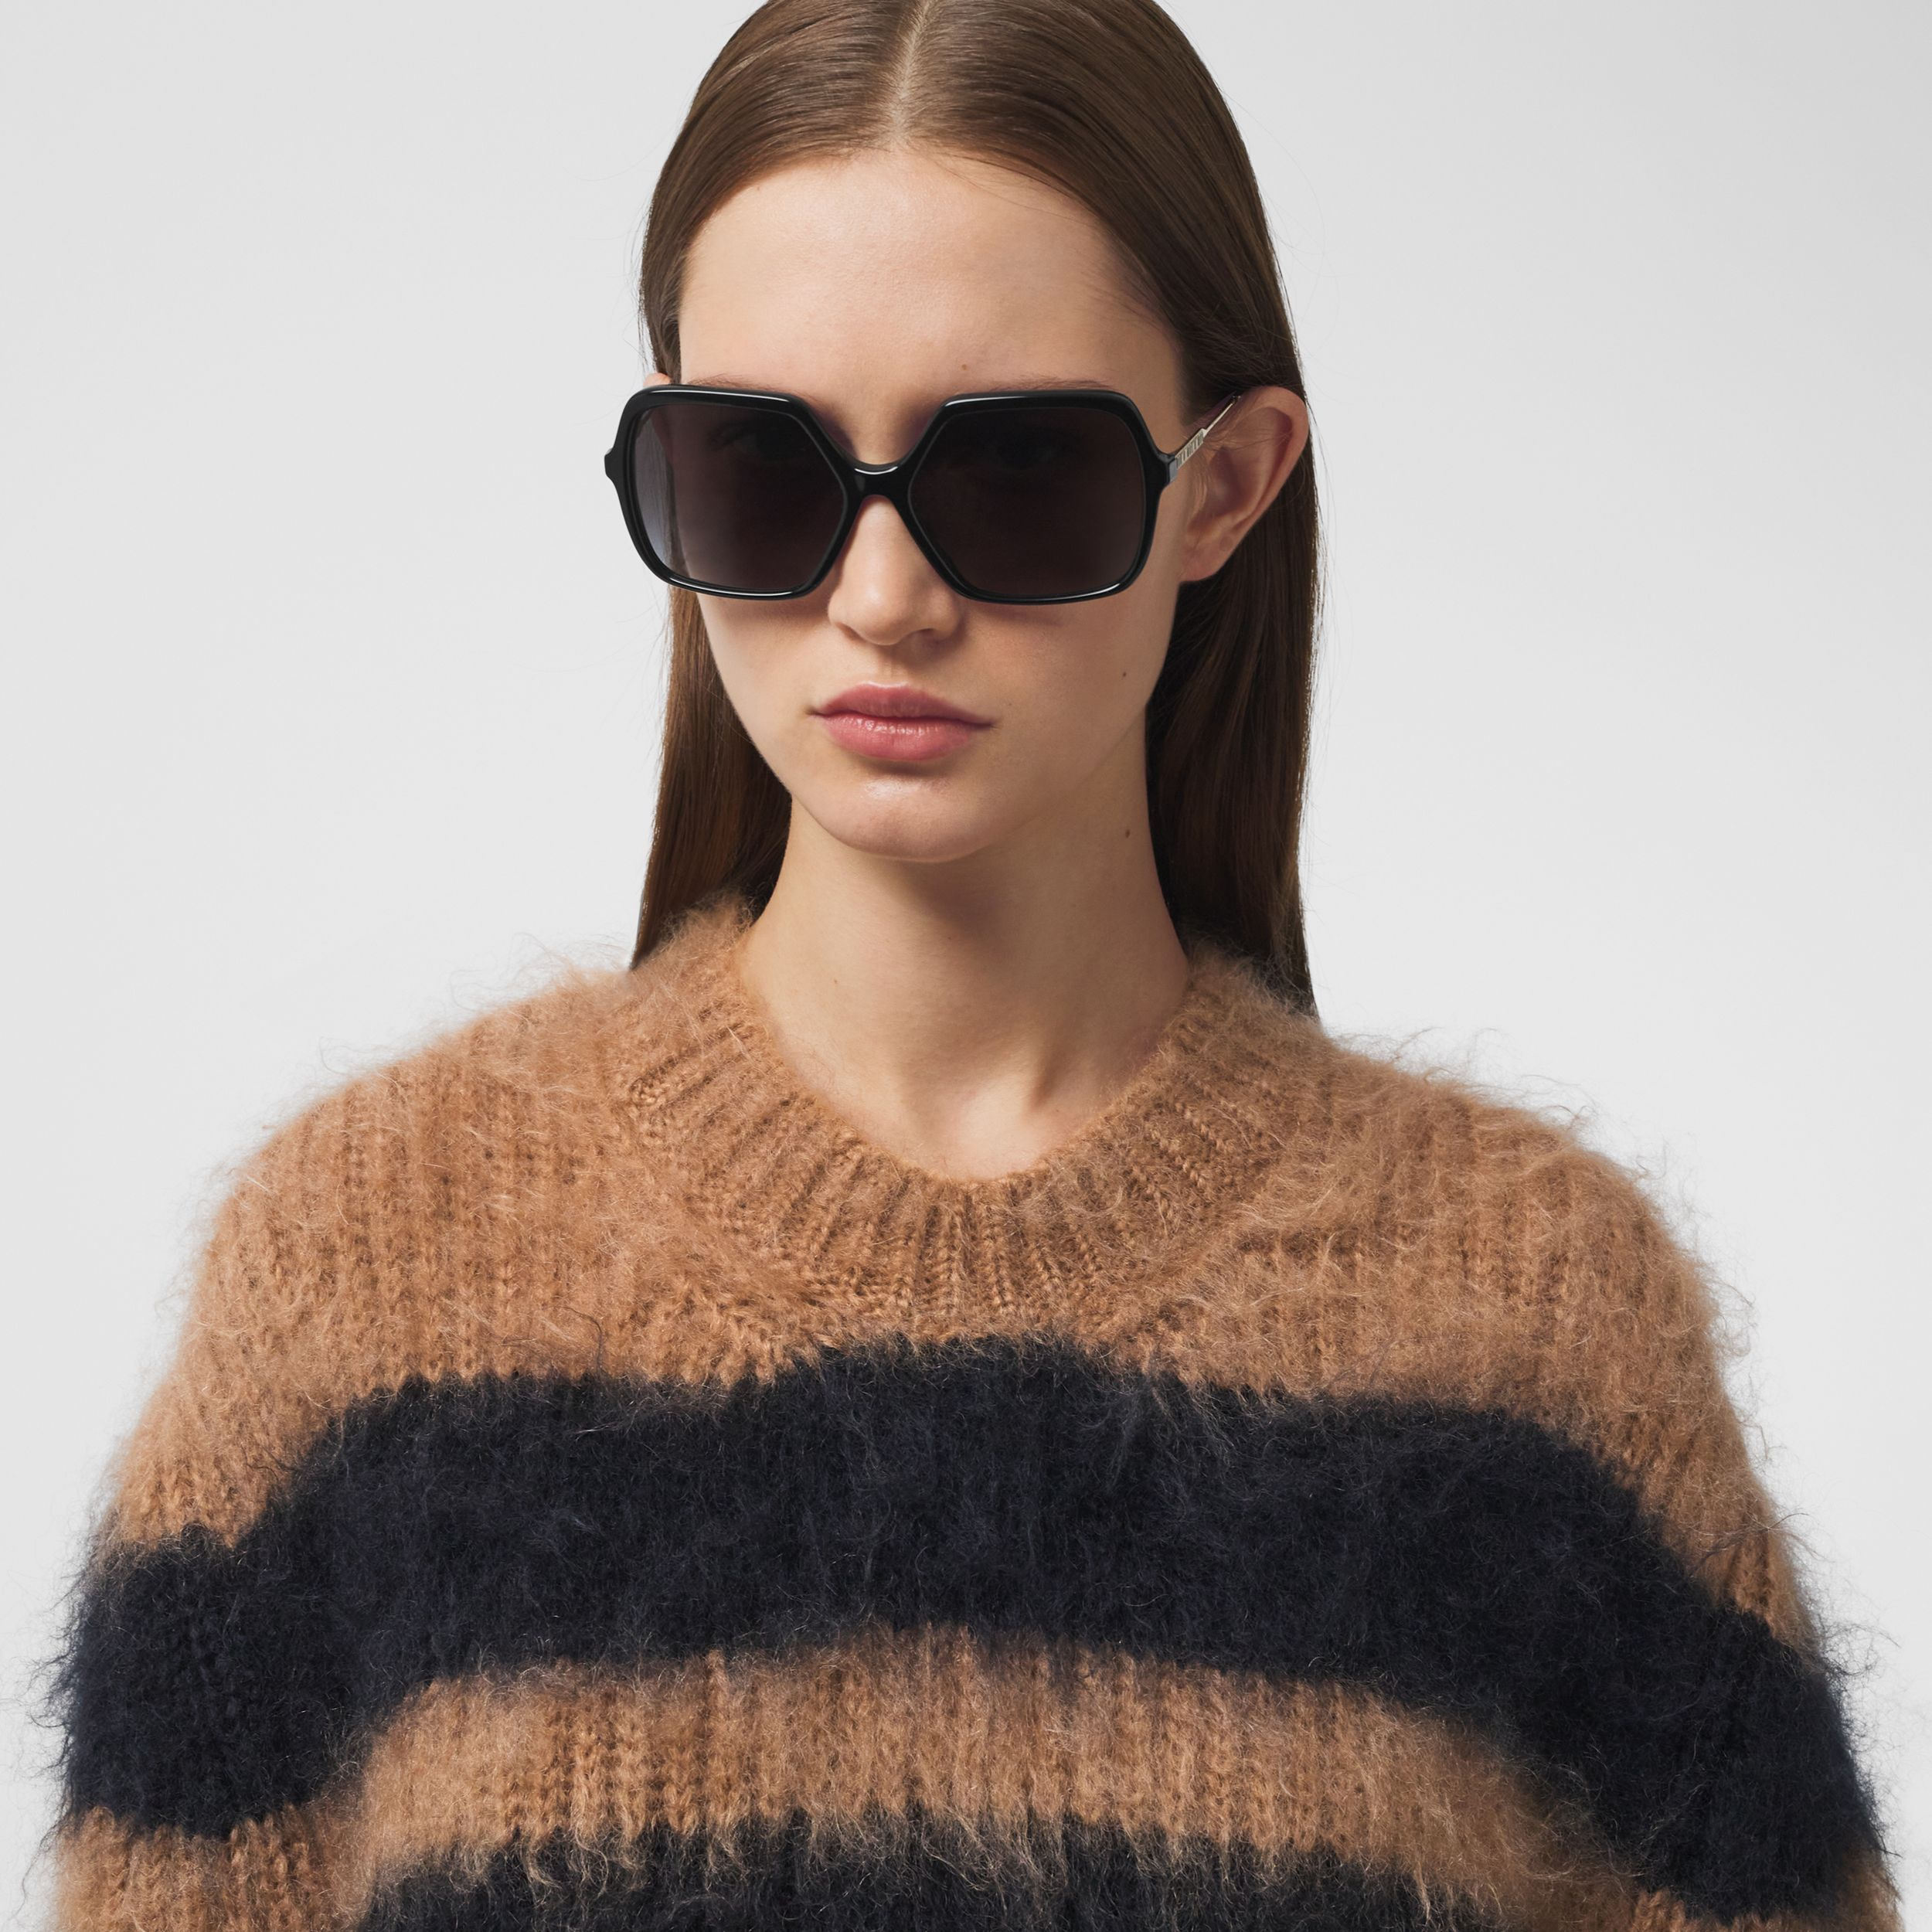 Stripe Intarsia Mohair Silk Oversized Sweater in Beige - Women | Burberry - 2